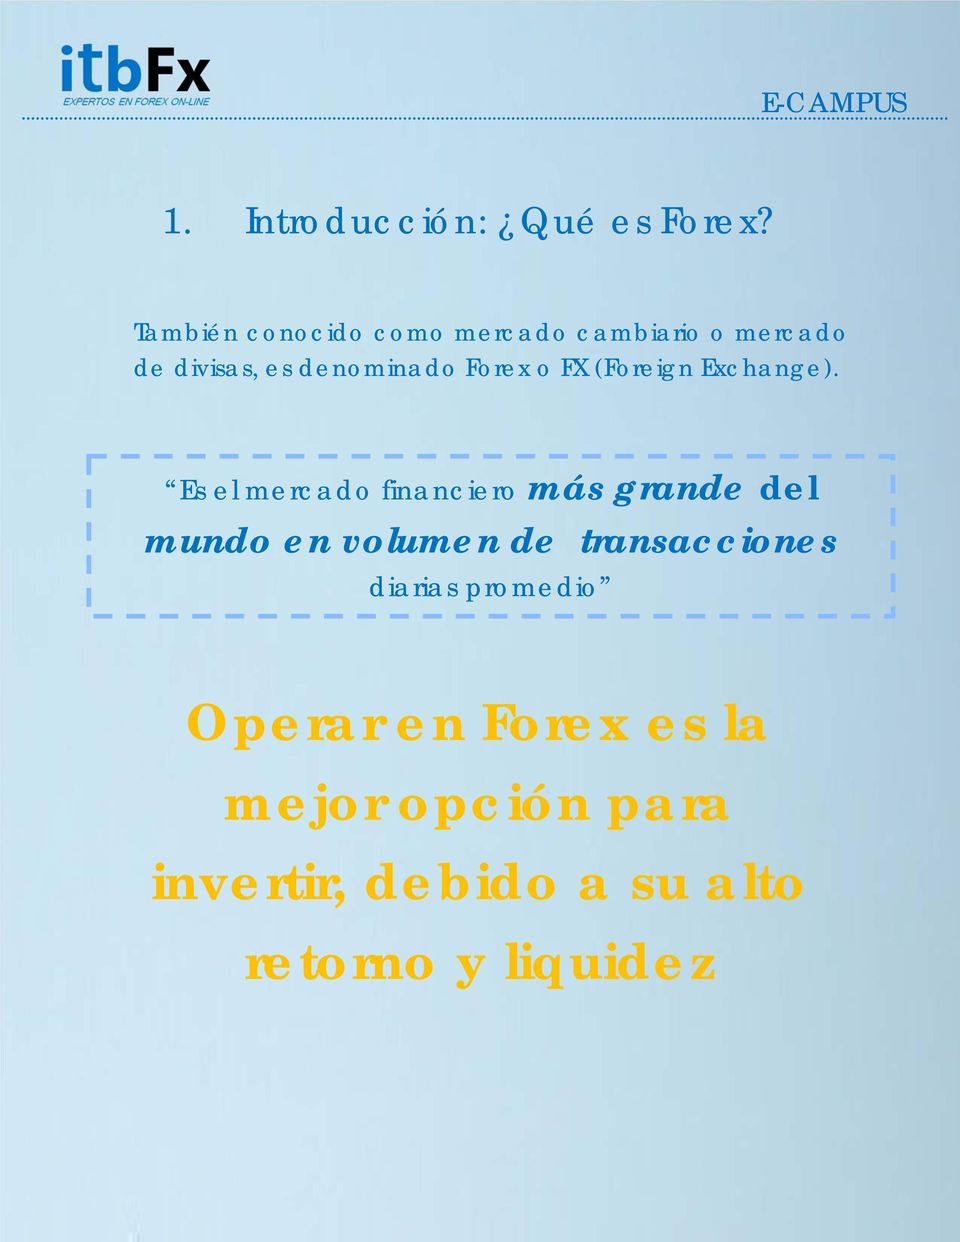 Forex o FX (Foreign Exchange).